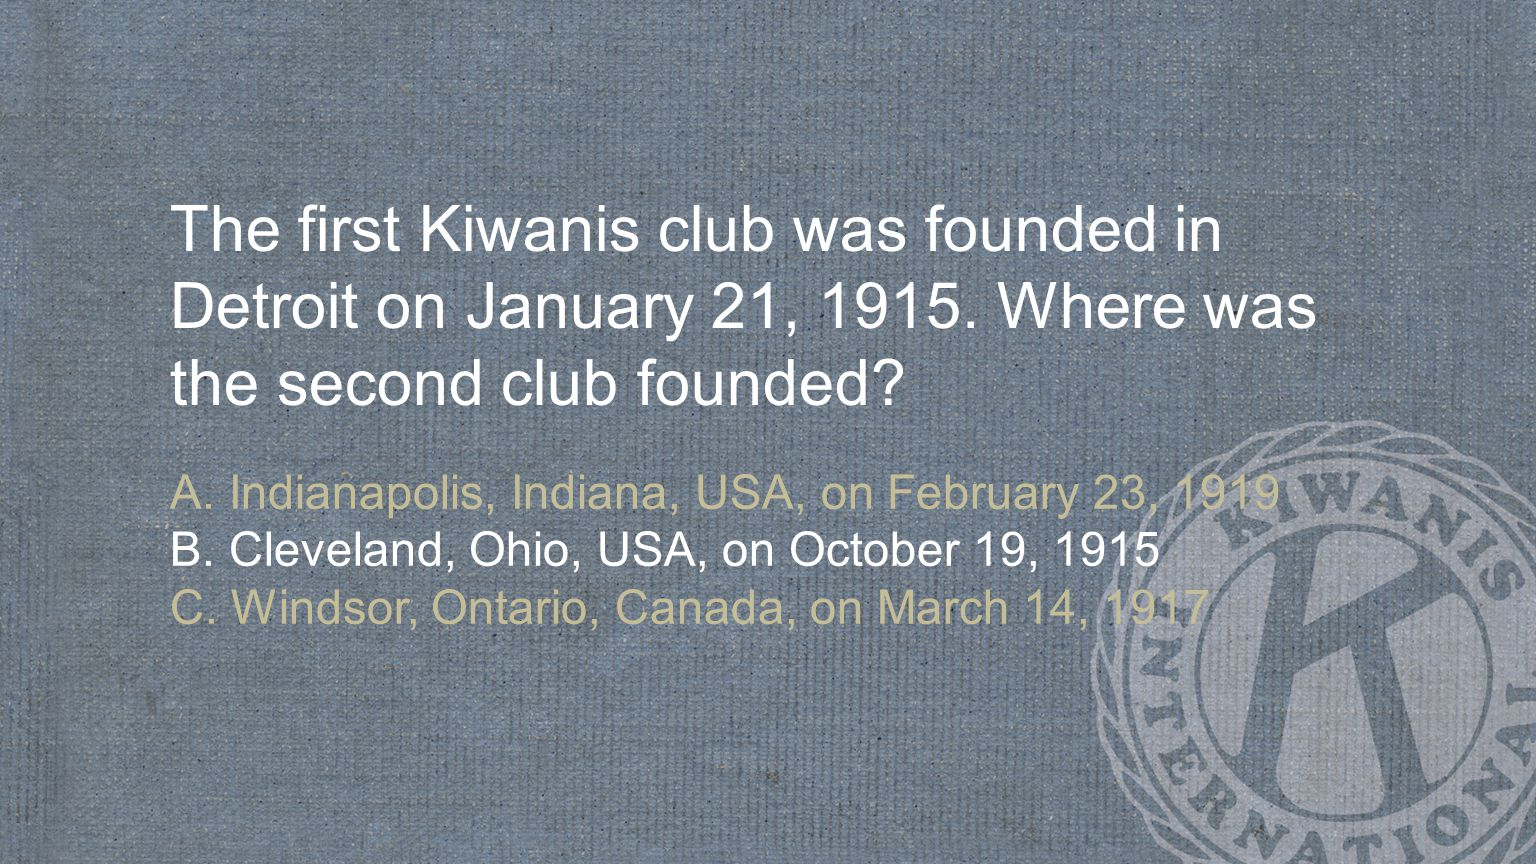 What year was the first Circle K International club chartered? A. 1935 B. 1922 C. 1947